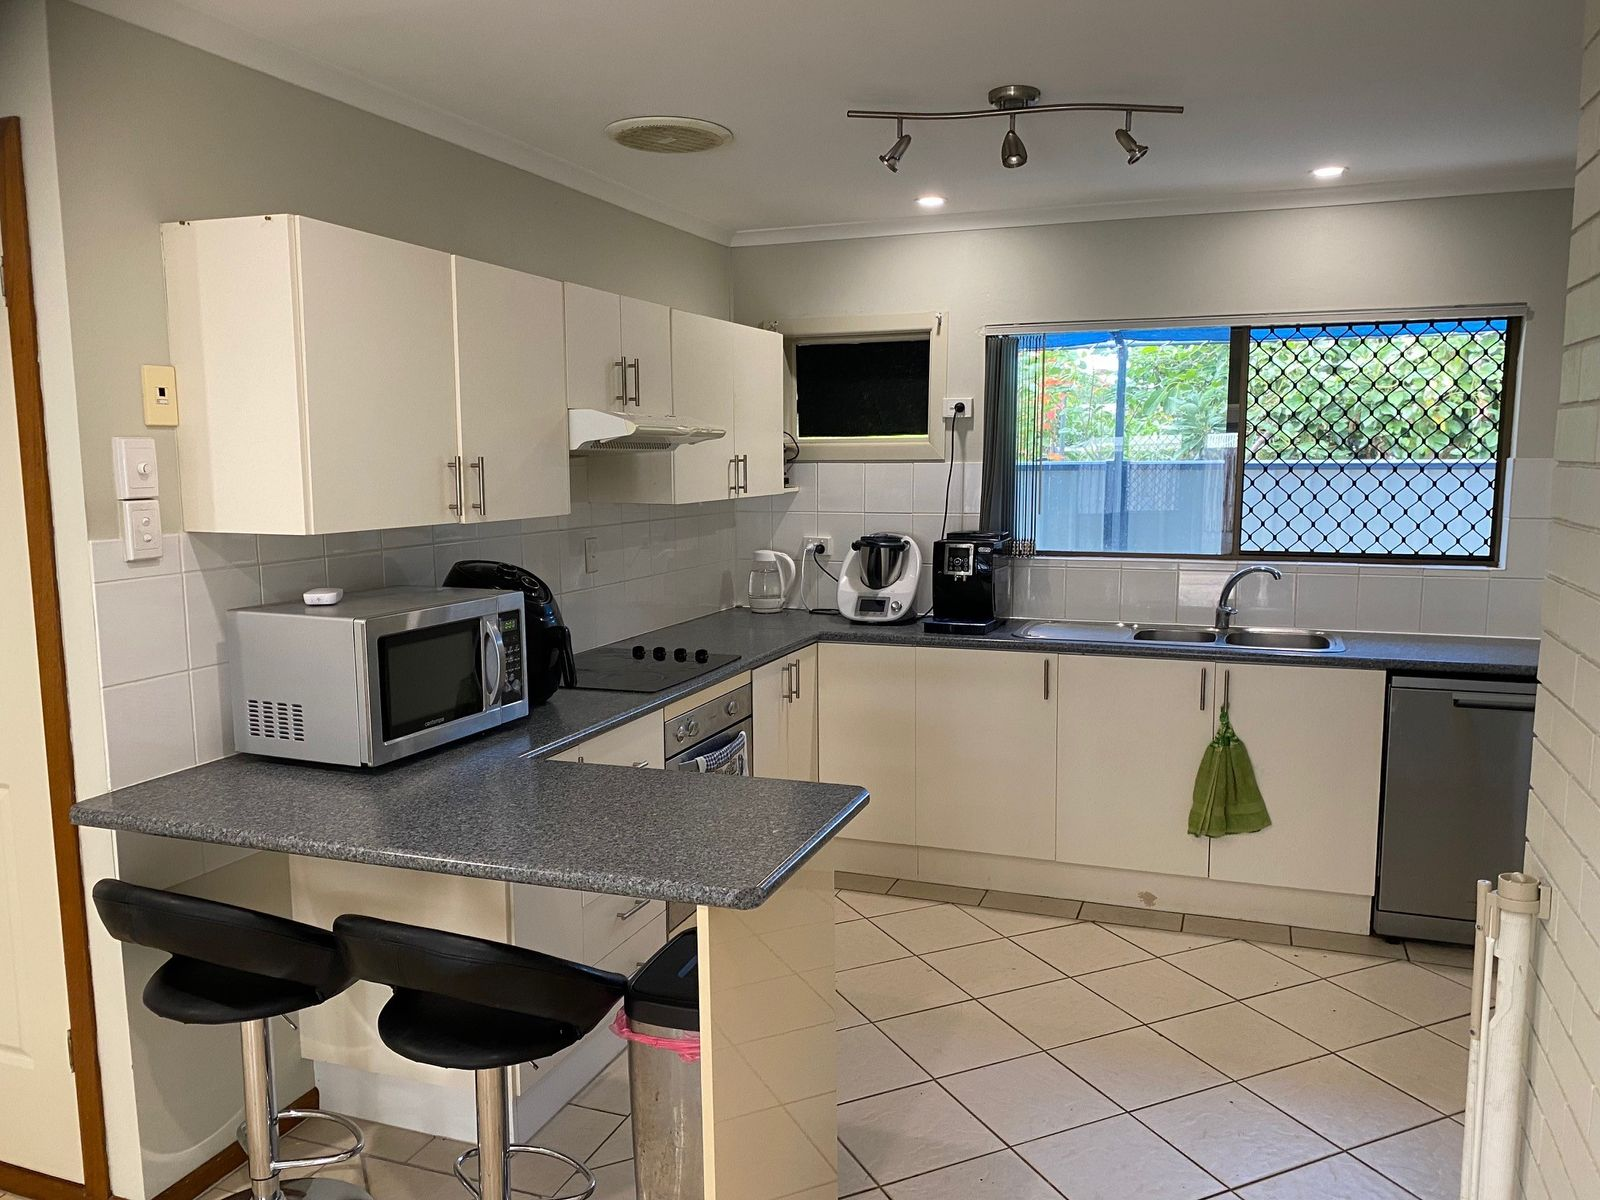 2/18 Clements Street, South Mackay, QLD 4740